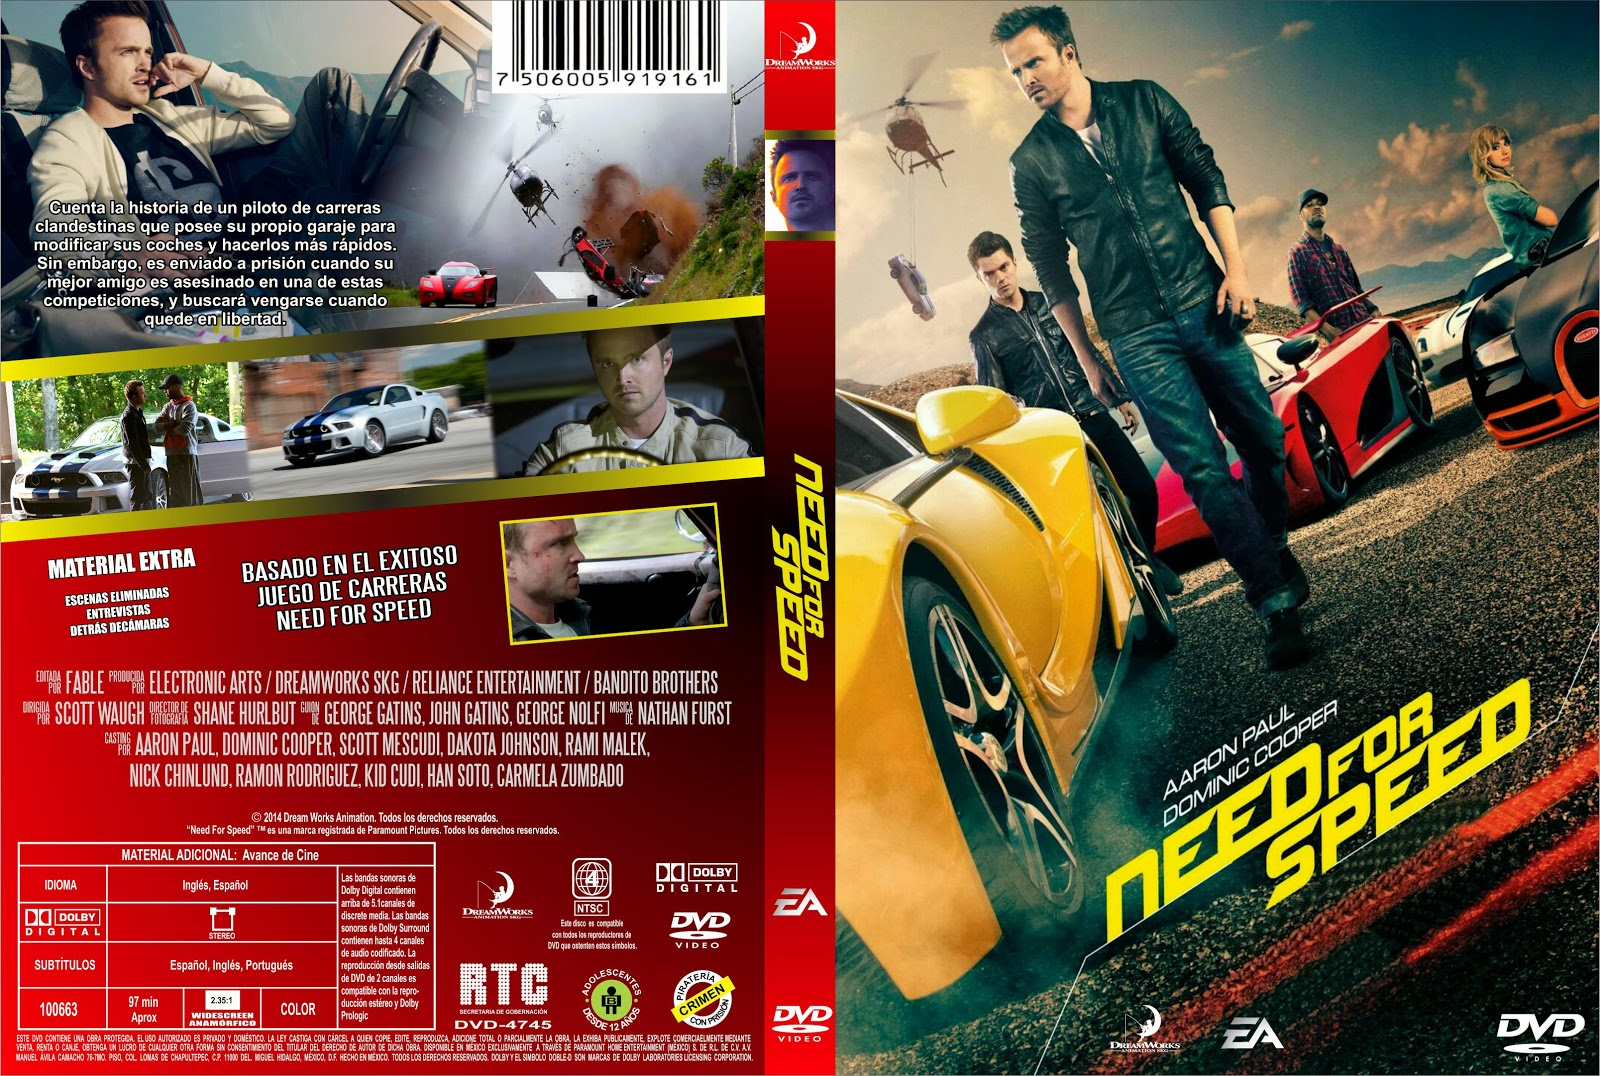 PB | DVD Cover / Caratula FREE: NEED FOR SPEED - DVD COVER ...